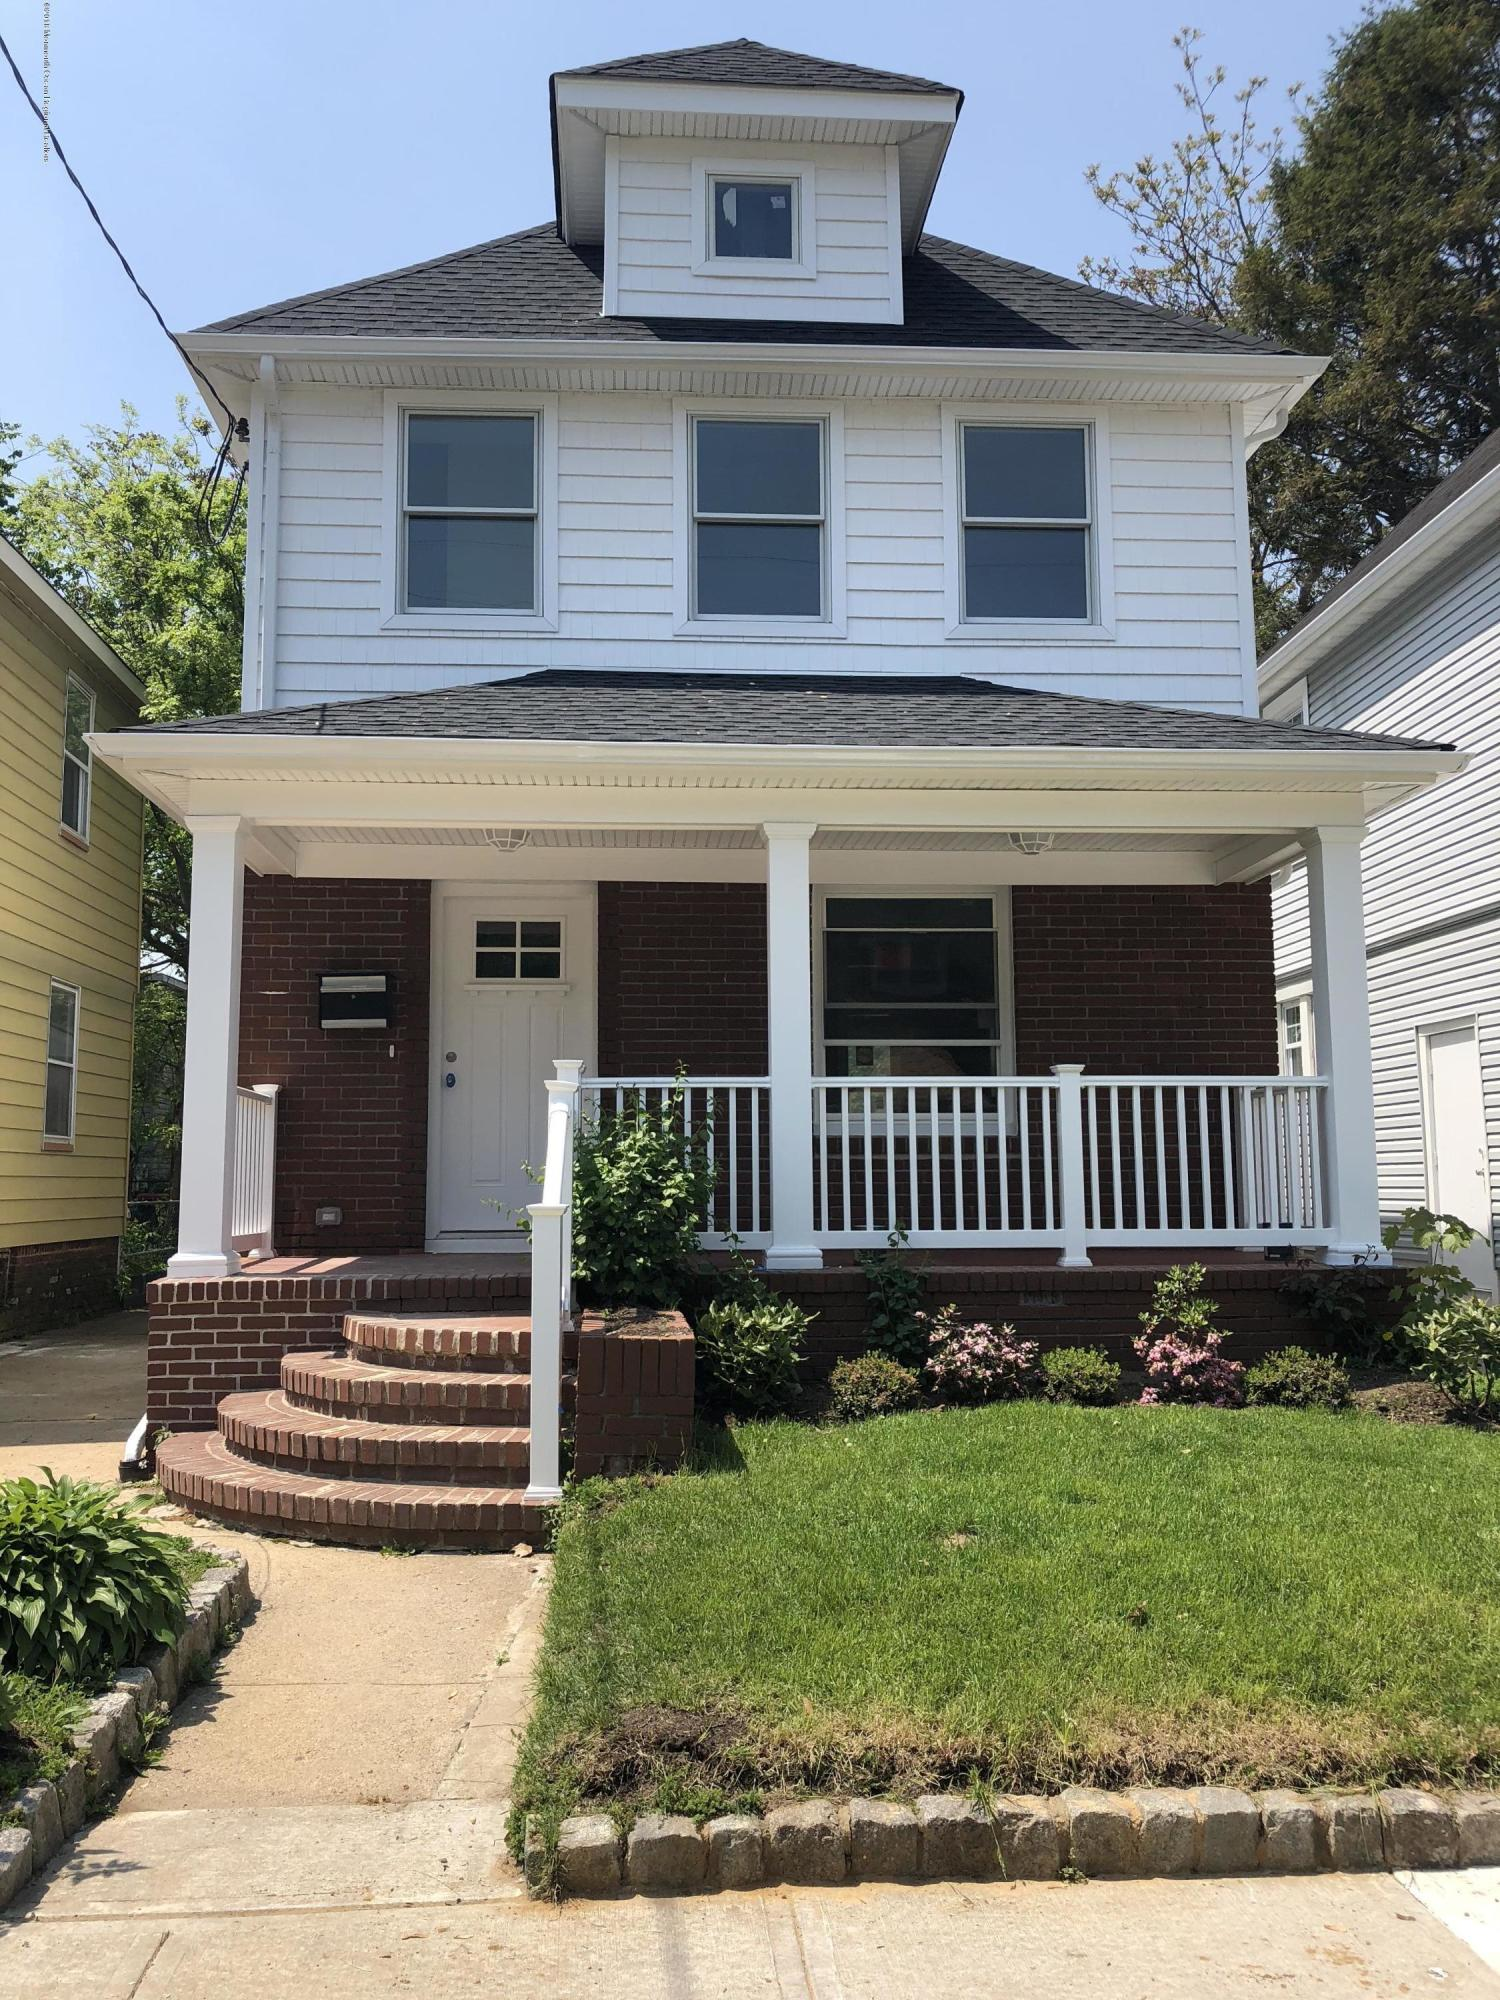 Photo of 16 High Street, Red Bank, NJ 07701